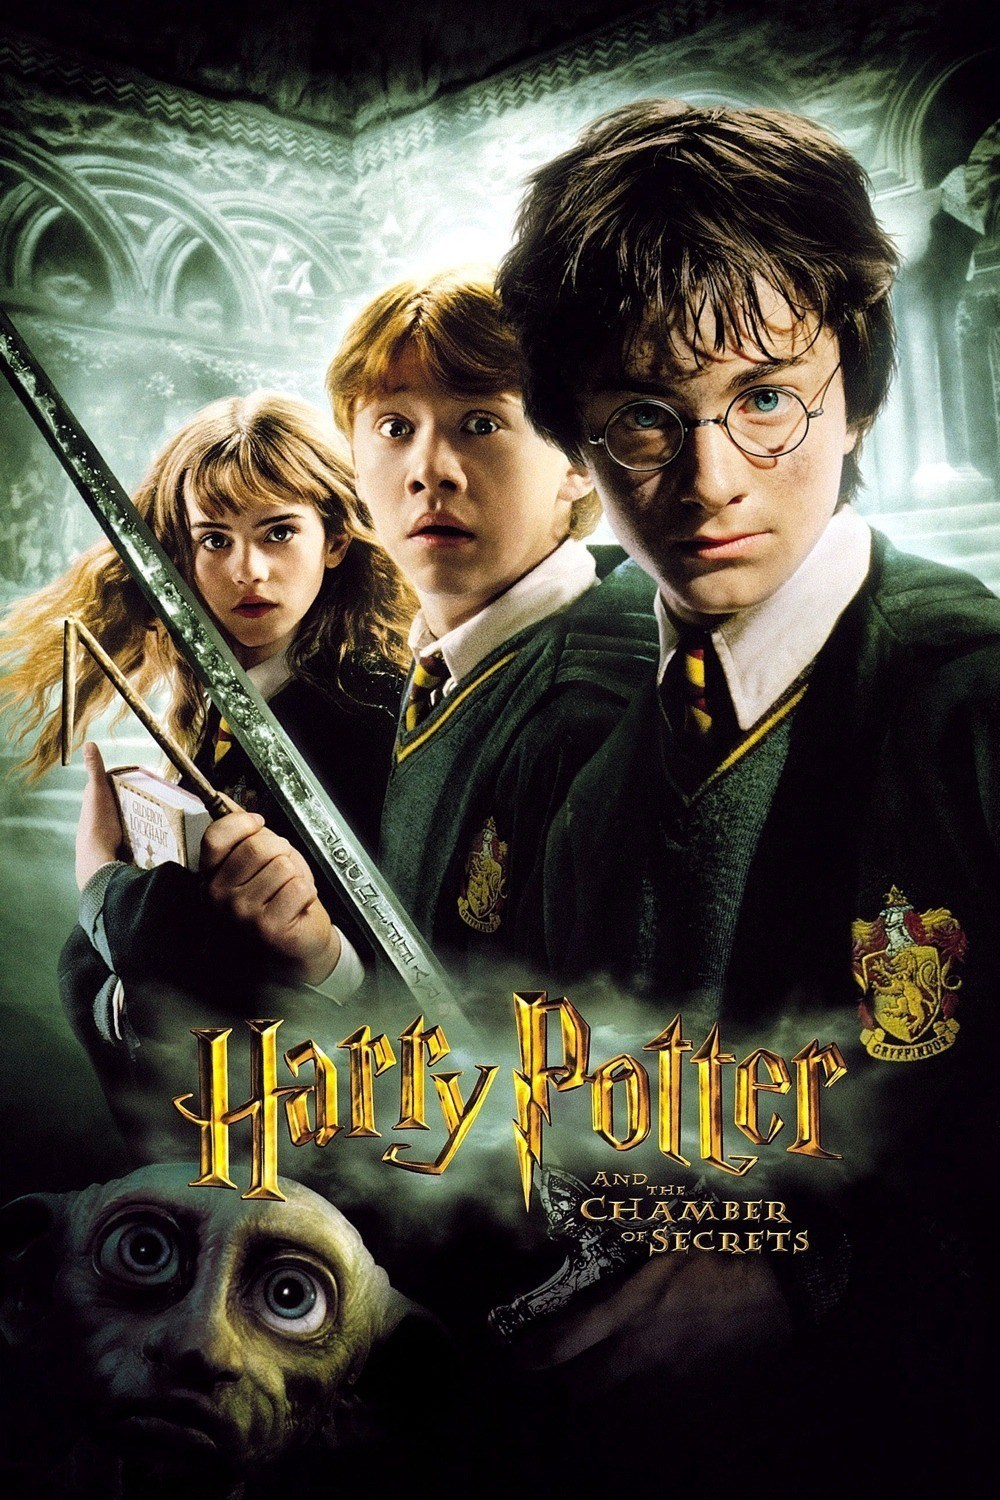 D8/Z1 58816 Harry Potter and the chamber of secrets Unknown